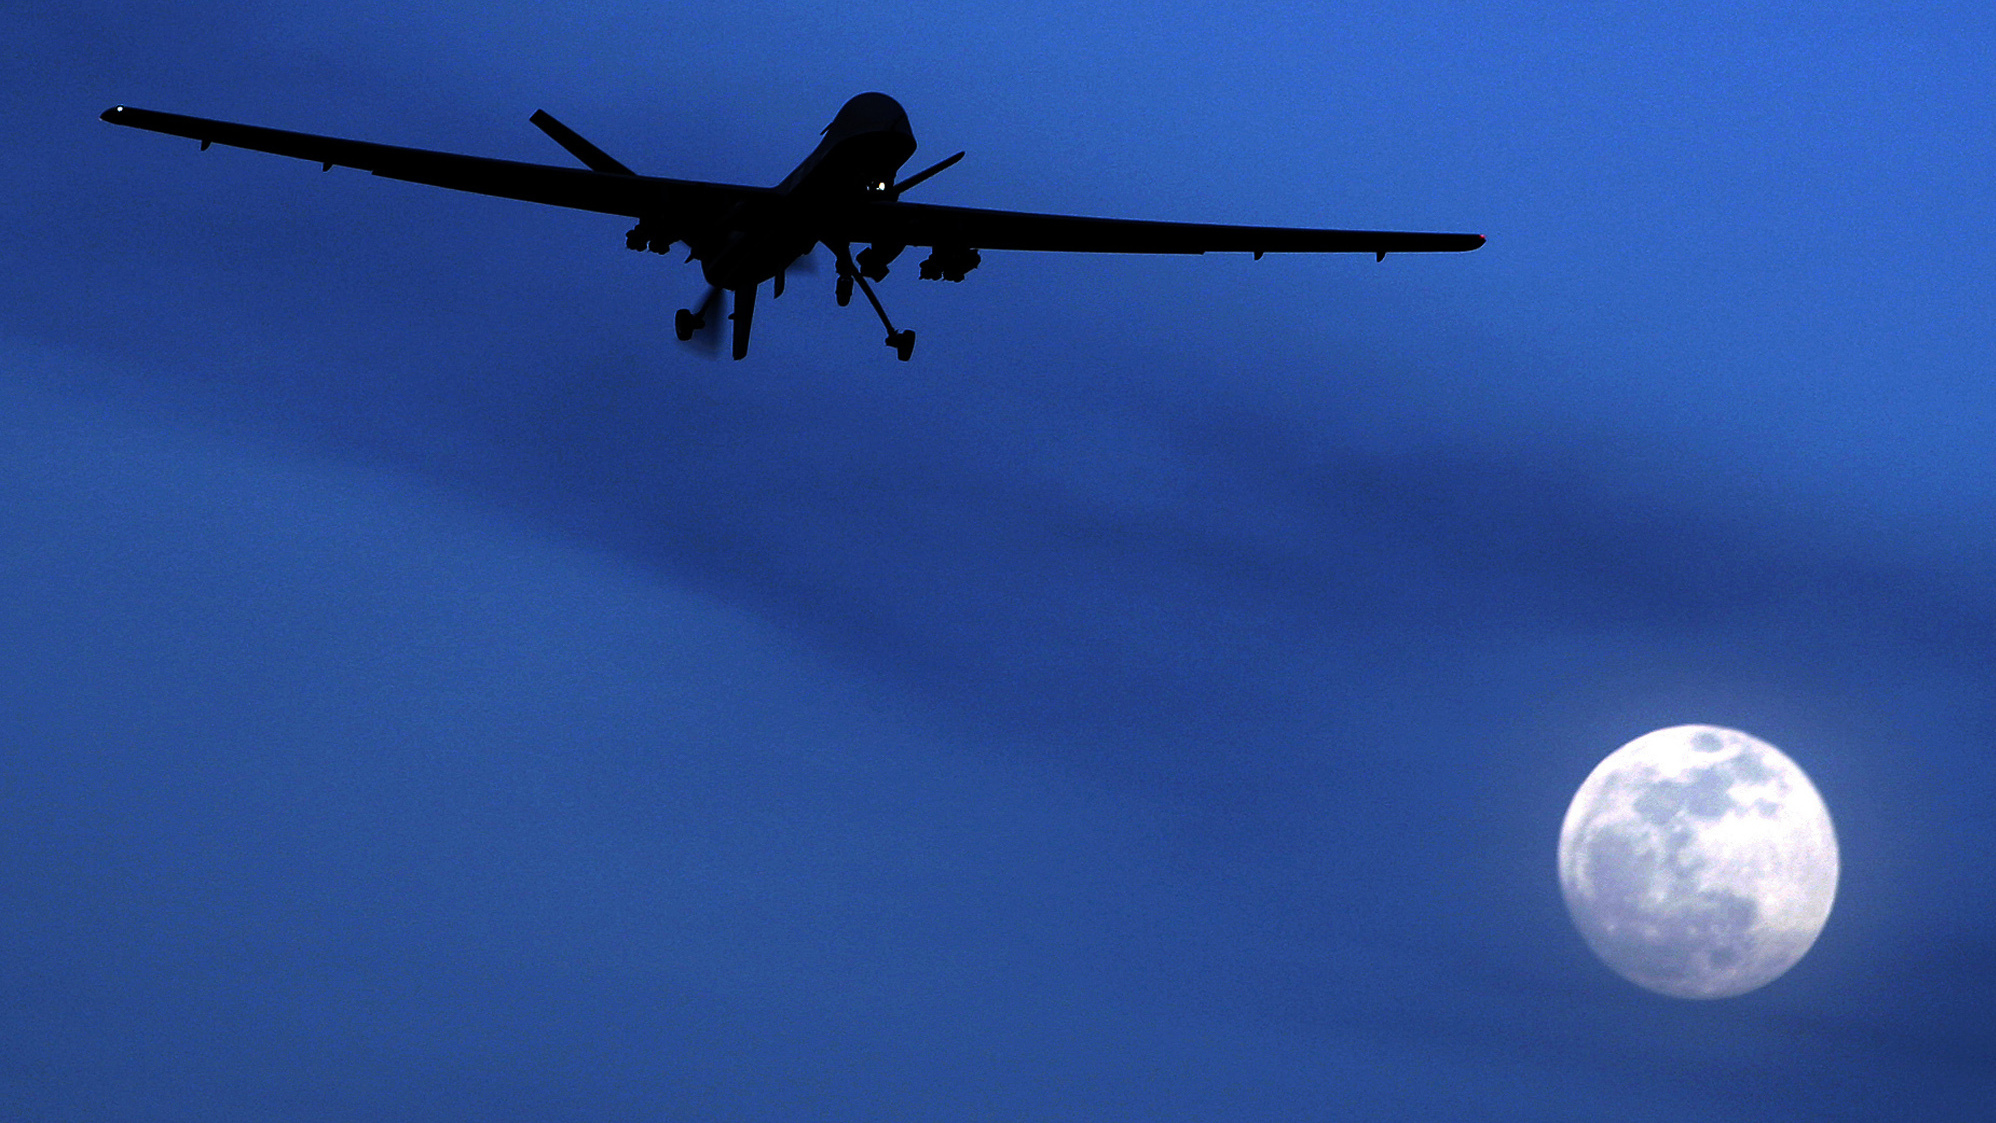 Are Drones Obama's Legacy In War On Terrorism?